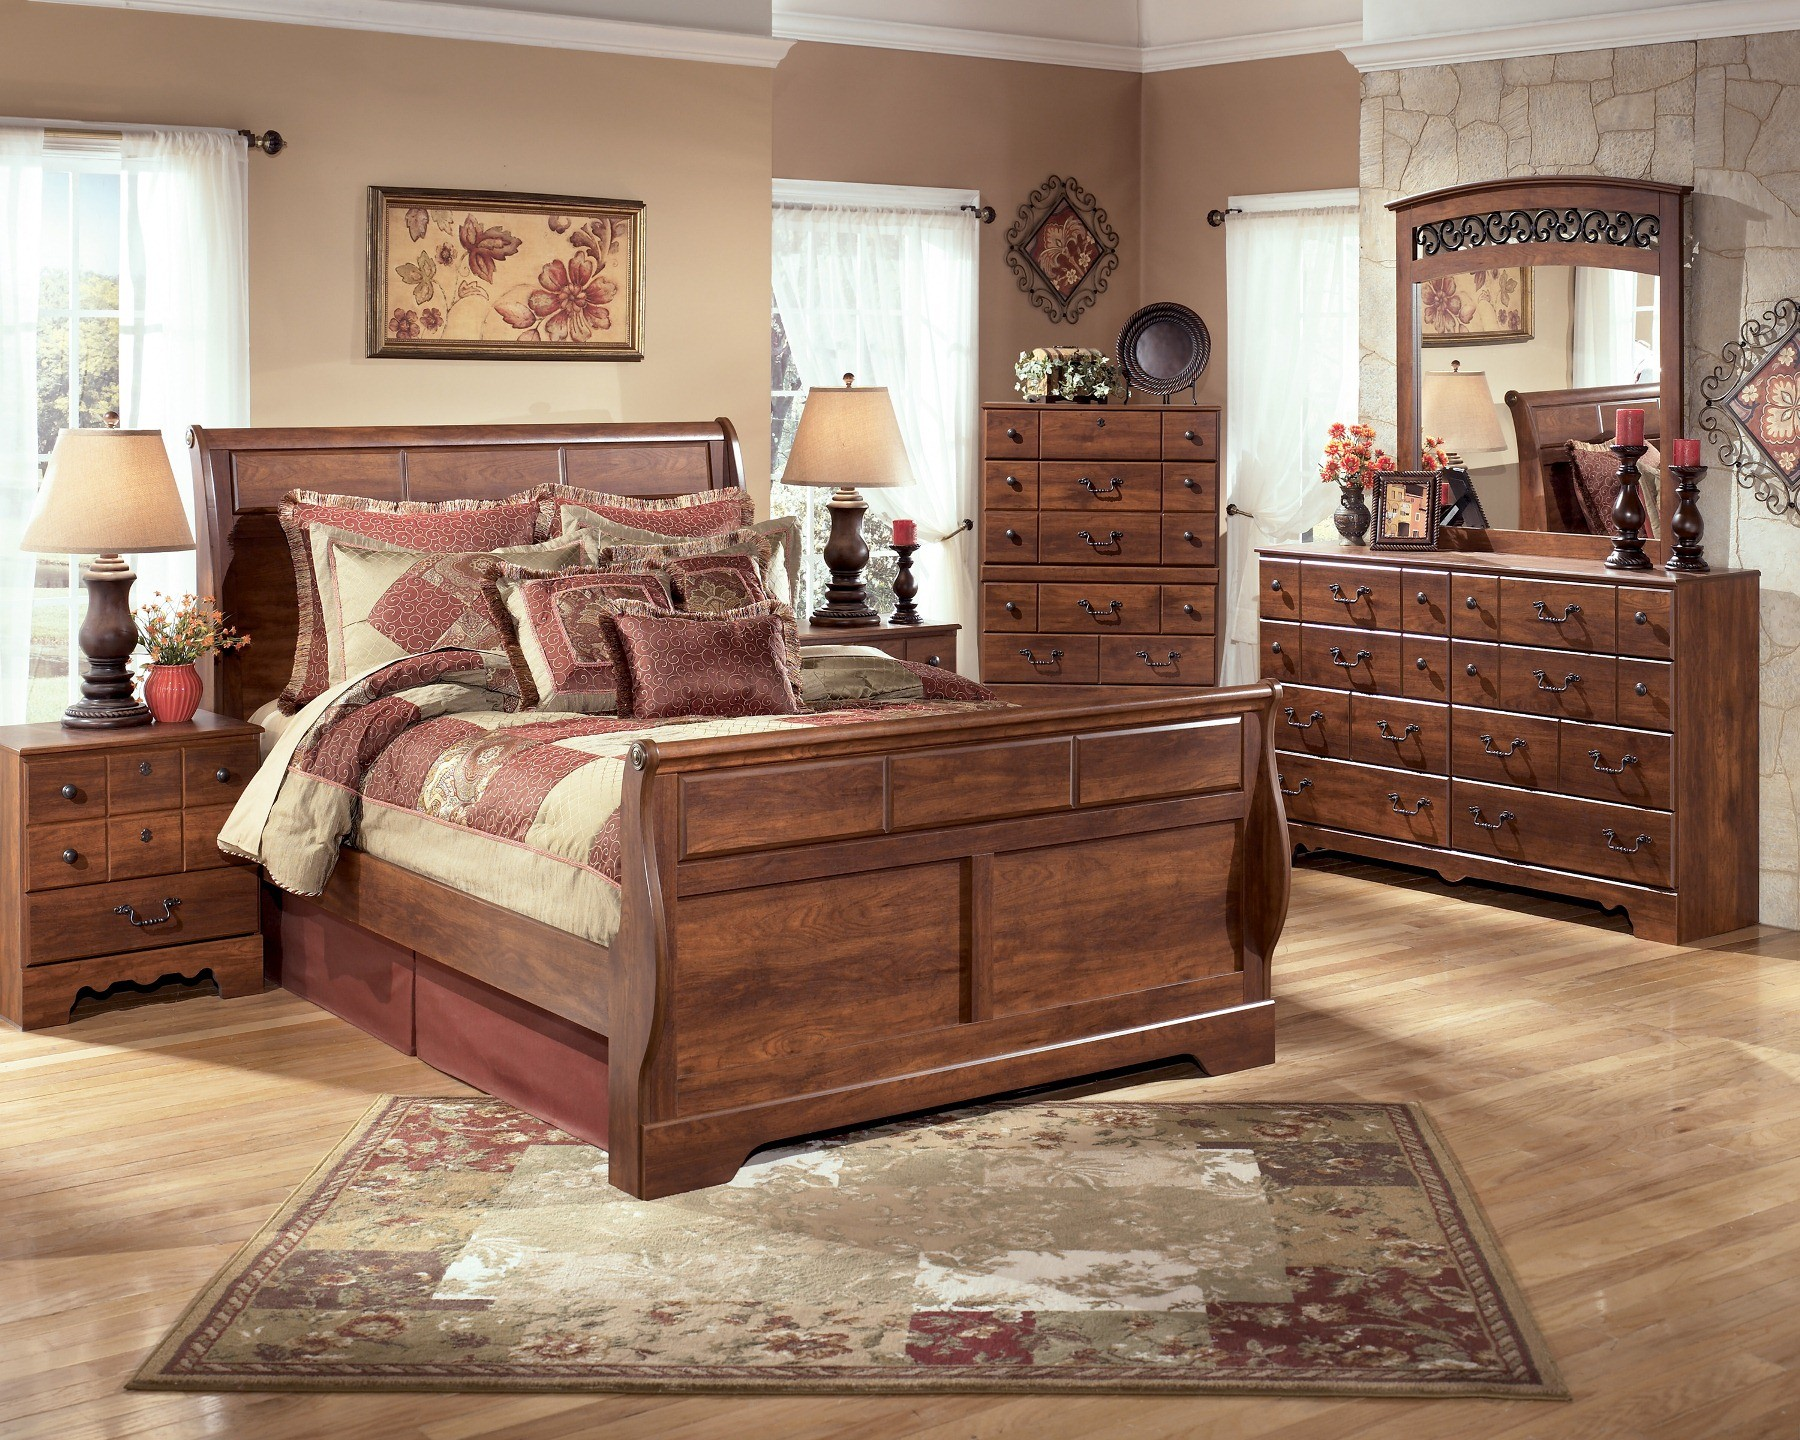 timberline queen sleigh bed from ashley b258 57 54 96 coleman furniture. Black Bedroom Furniture Sets. Home Design Ideas